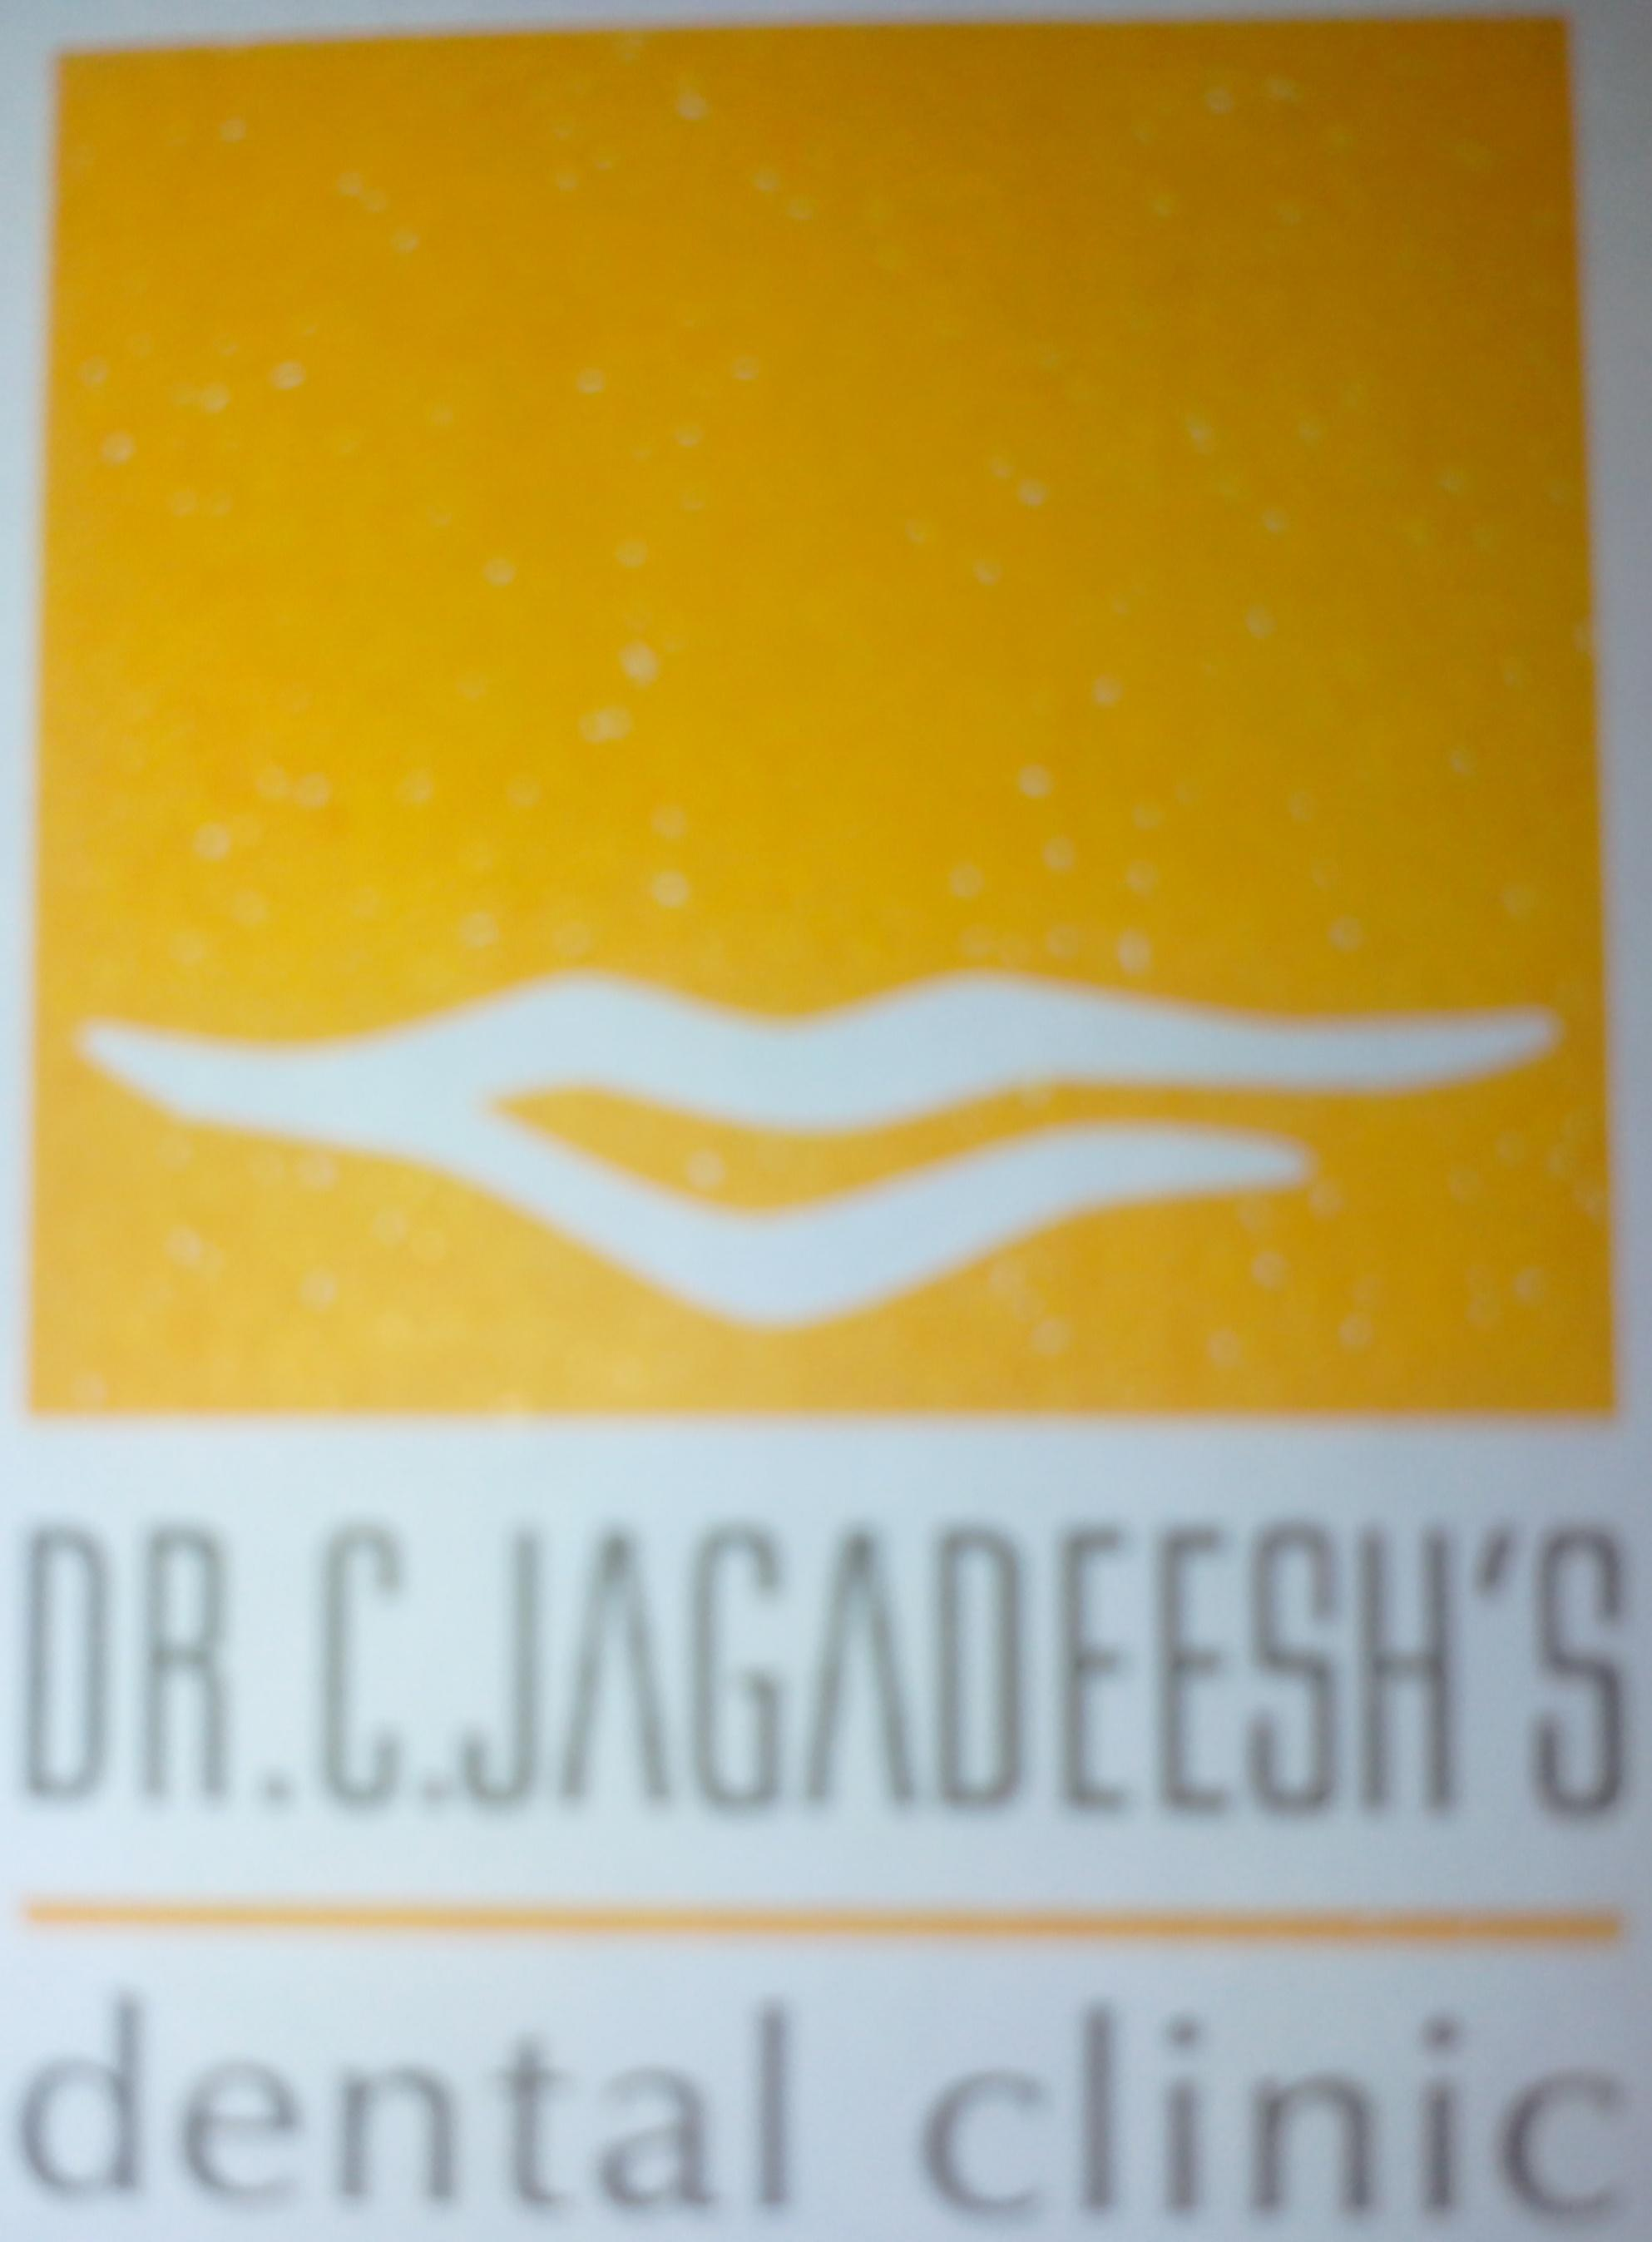 Dr. C Jagadeesh's Dental Clinic